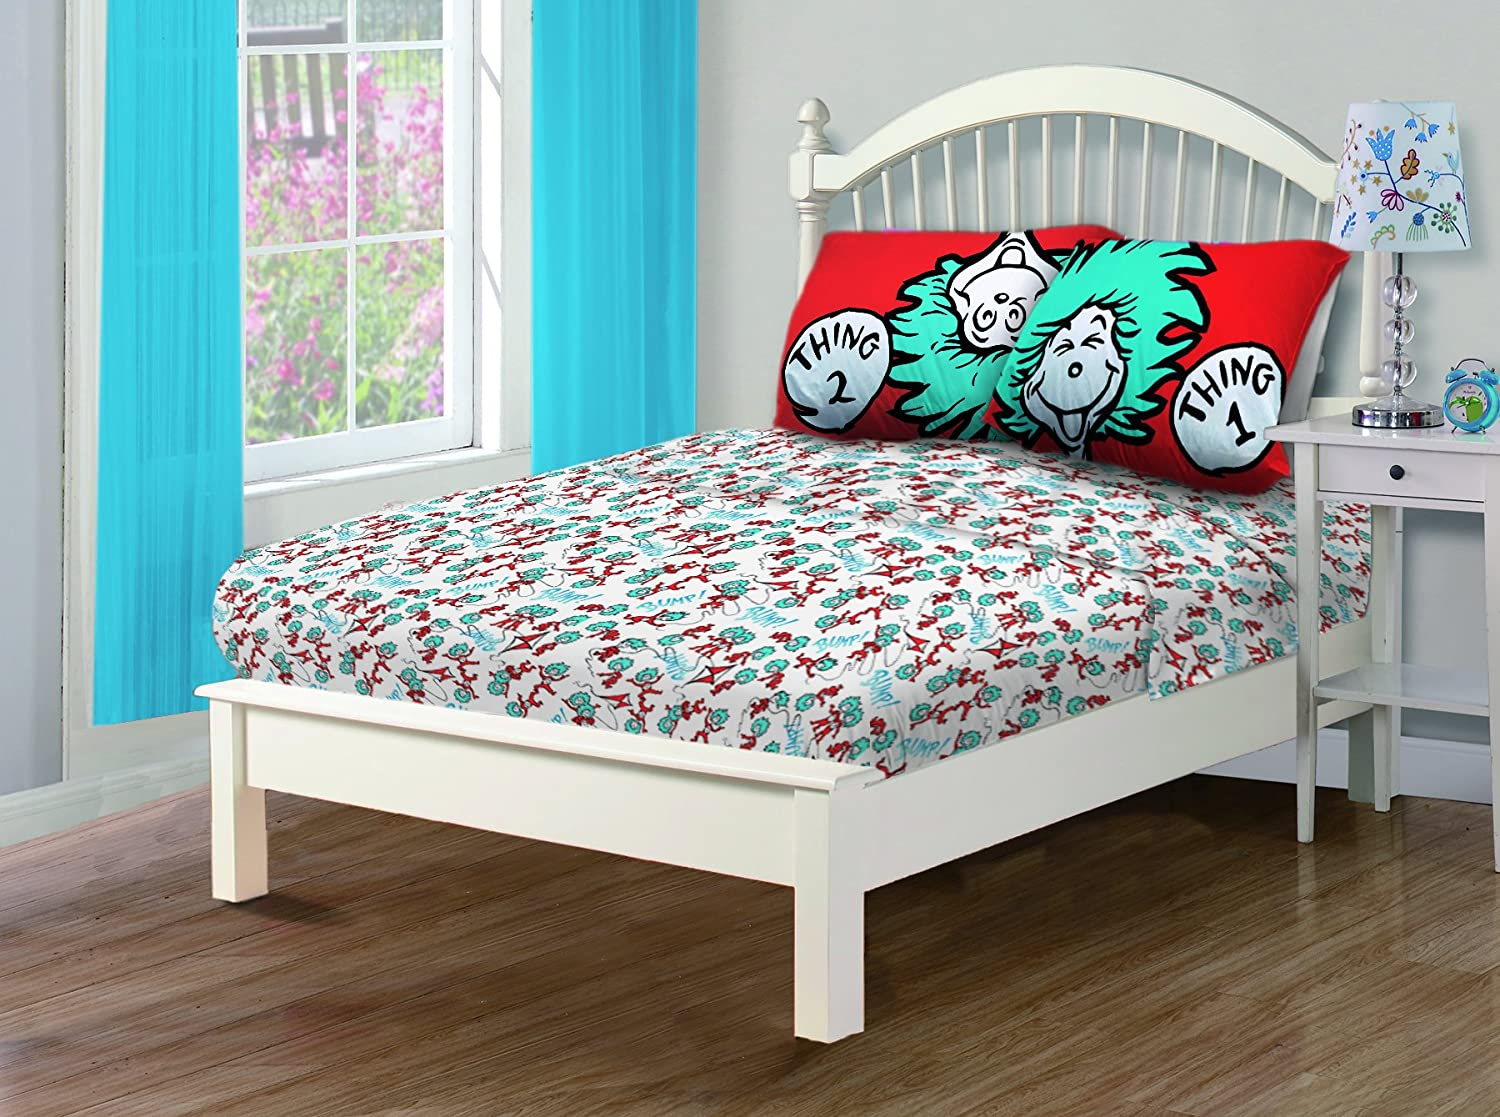 Amazon com  Dr  Seuss Cat in the Hat  Covers Twin Sheet Set Including  1  Flat Sheet  1 Fitted Sheet and 1 Pillow Case  Home   Kitchen. Amazon com  Dr  Seuss Cat in the Hat  Covers Twin Sheet Set